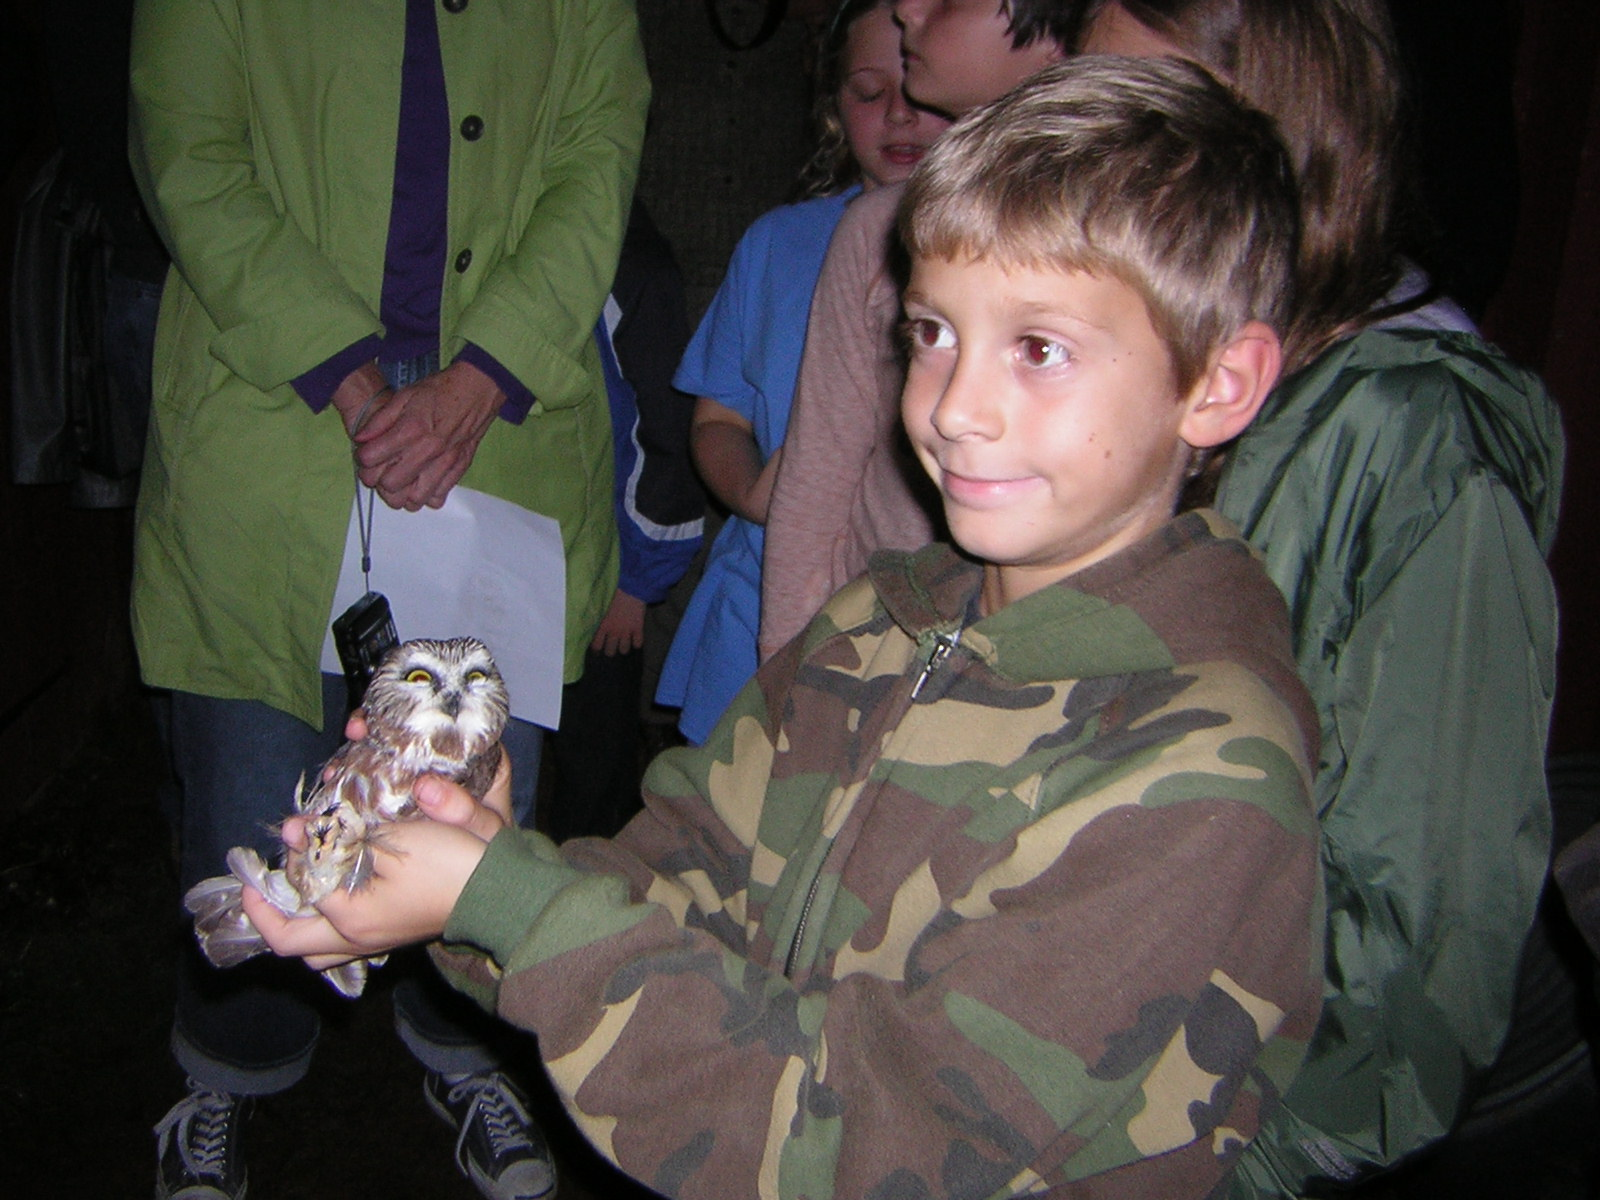 PA Young Birder releasing a Saw-whet Owl.